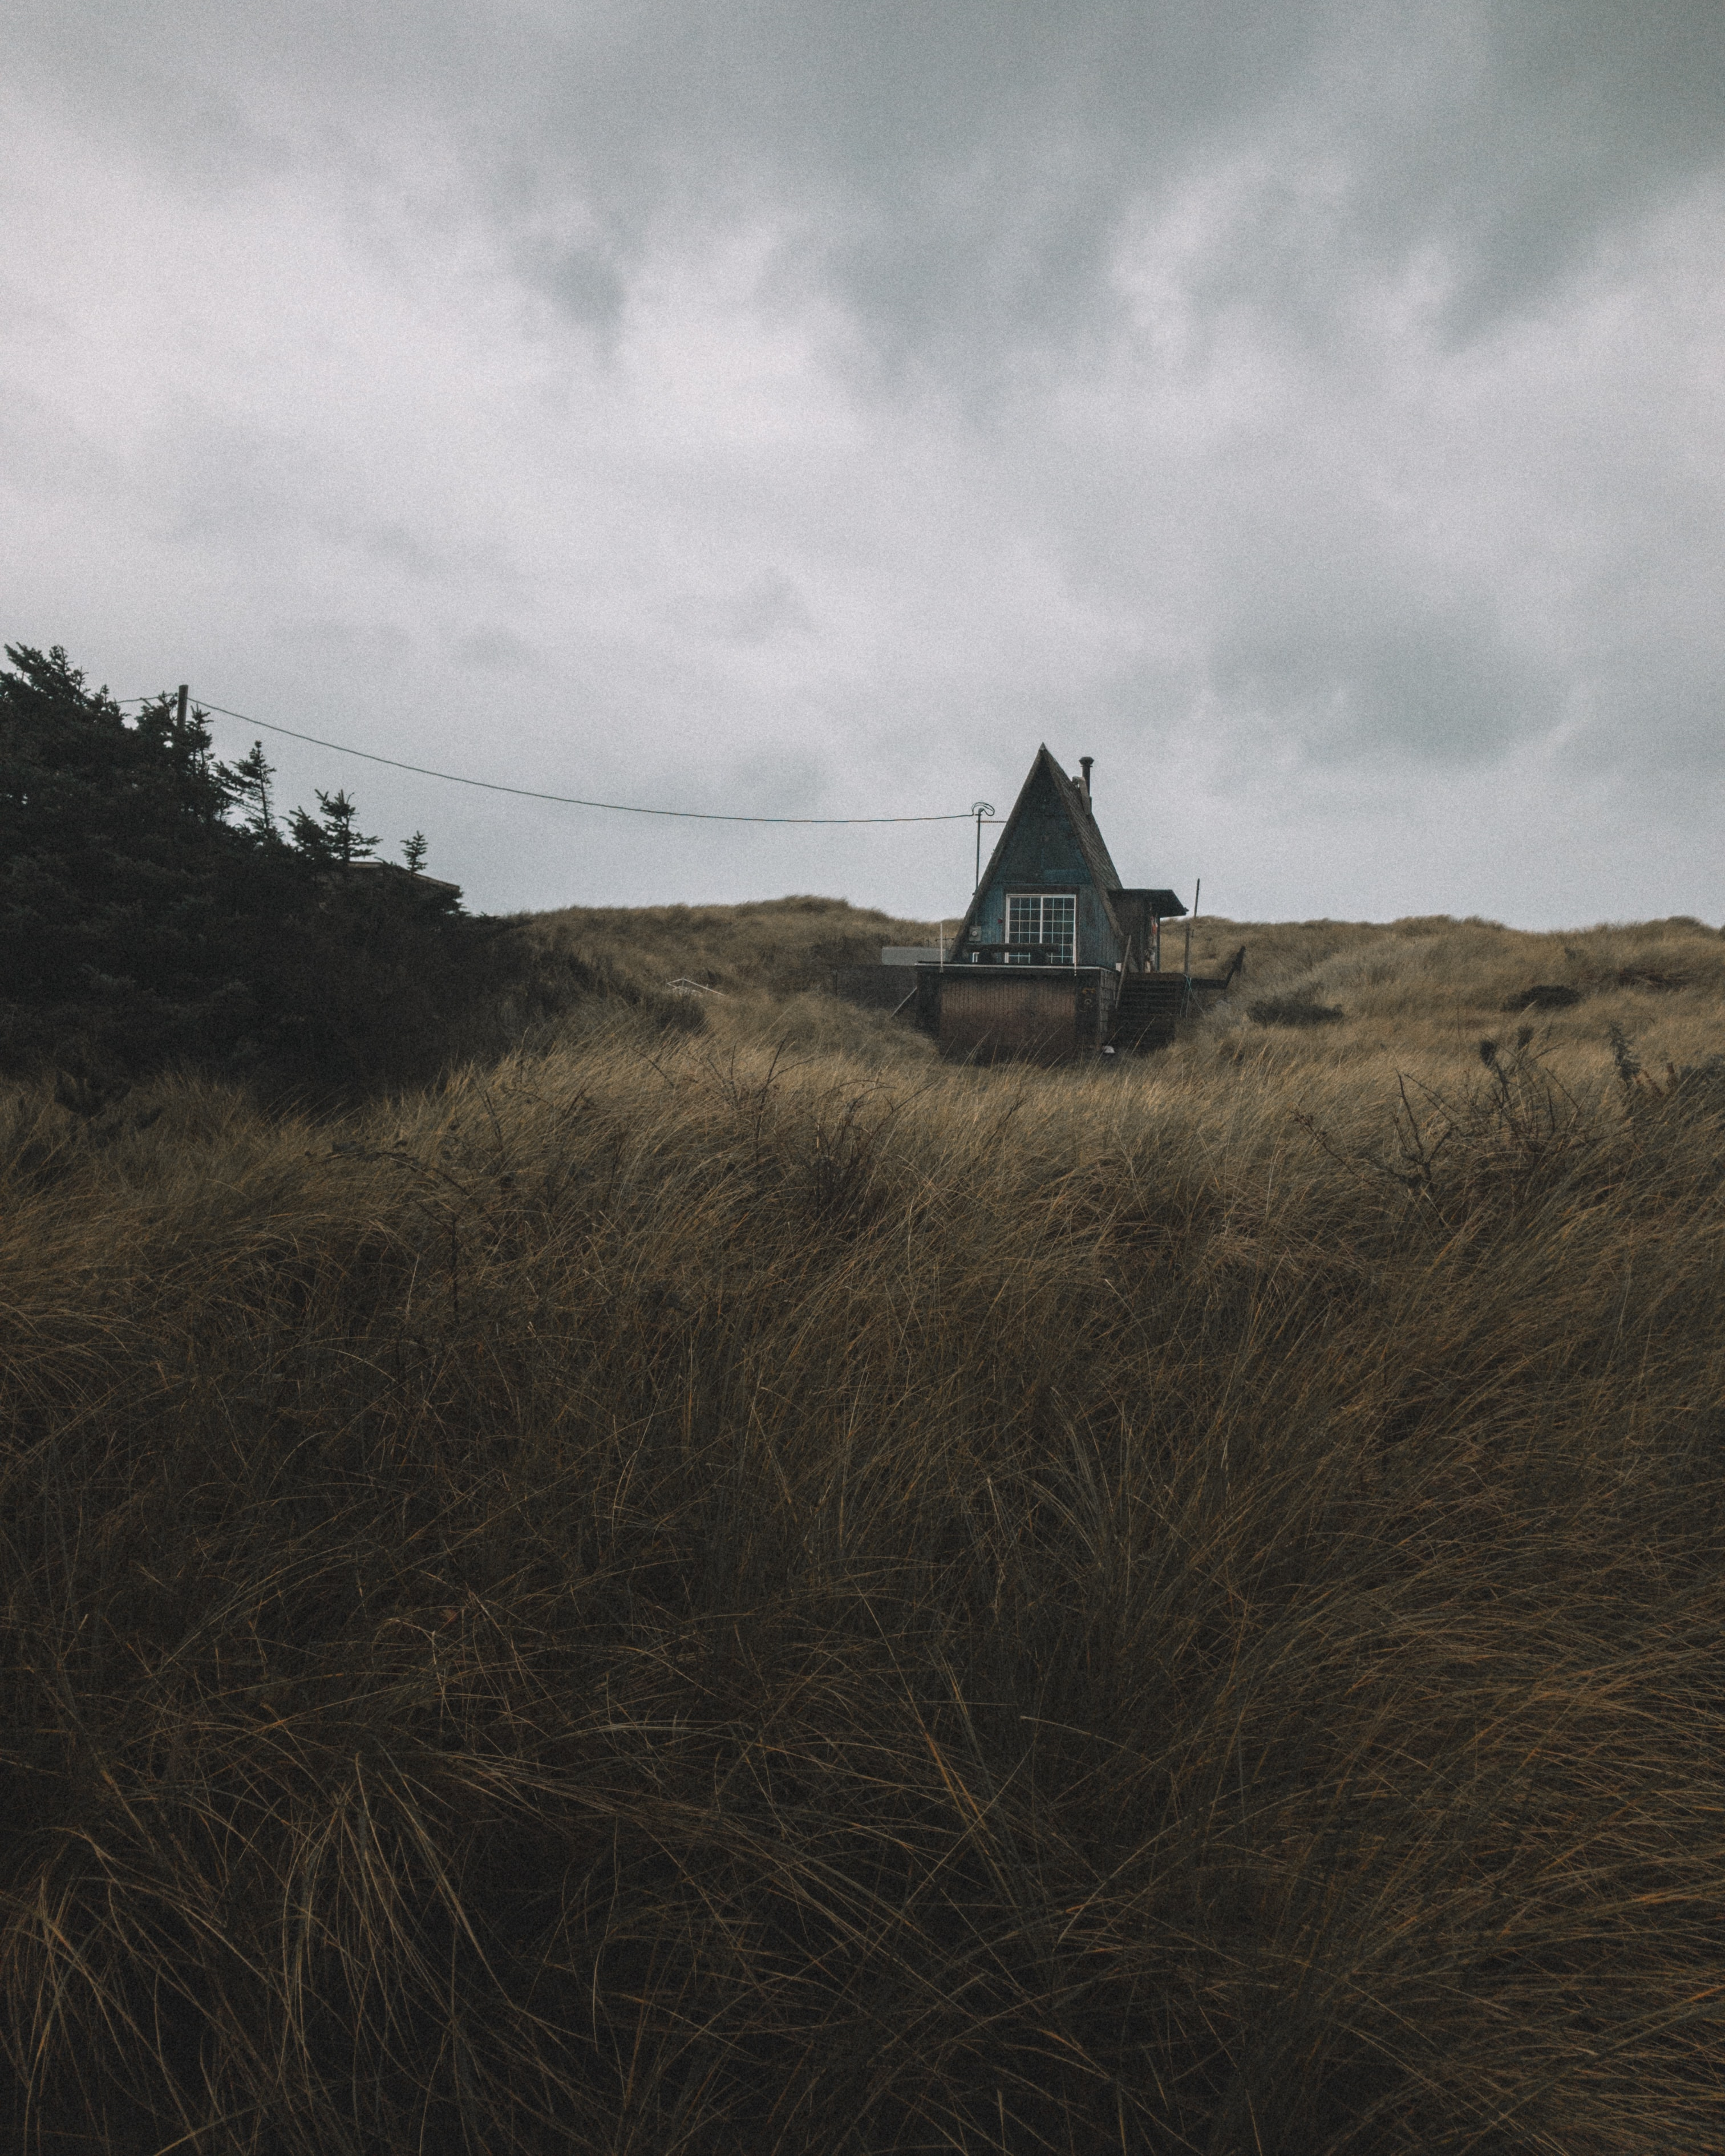 A small hut in a grassy field on a cloudy day